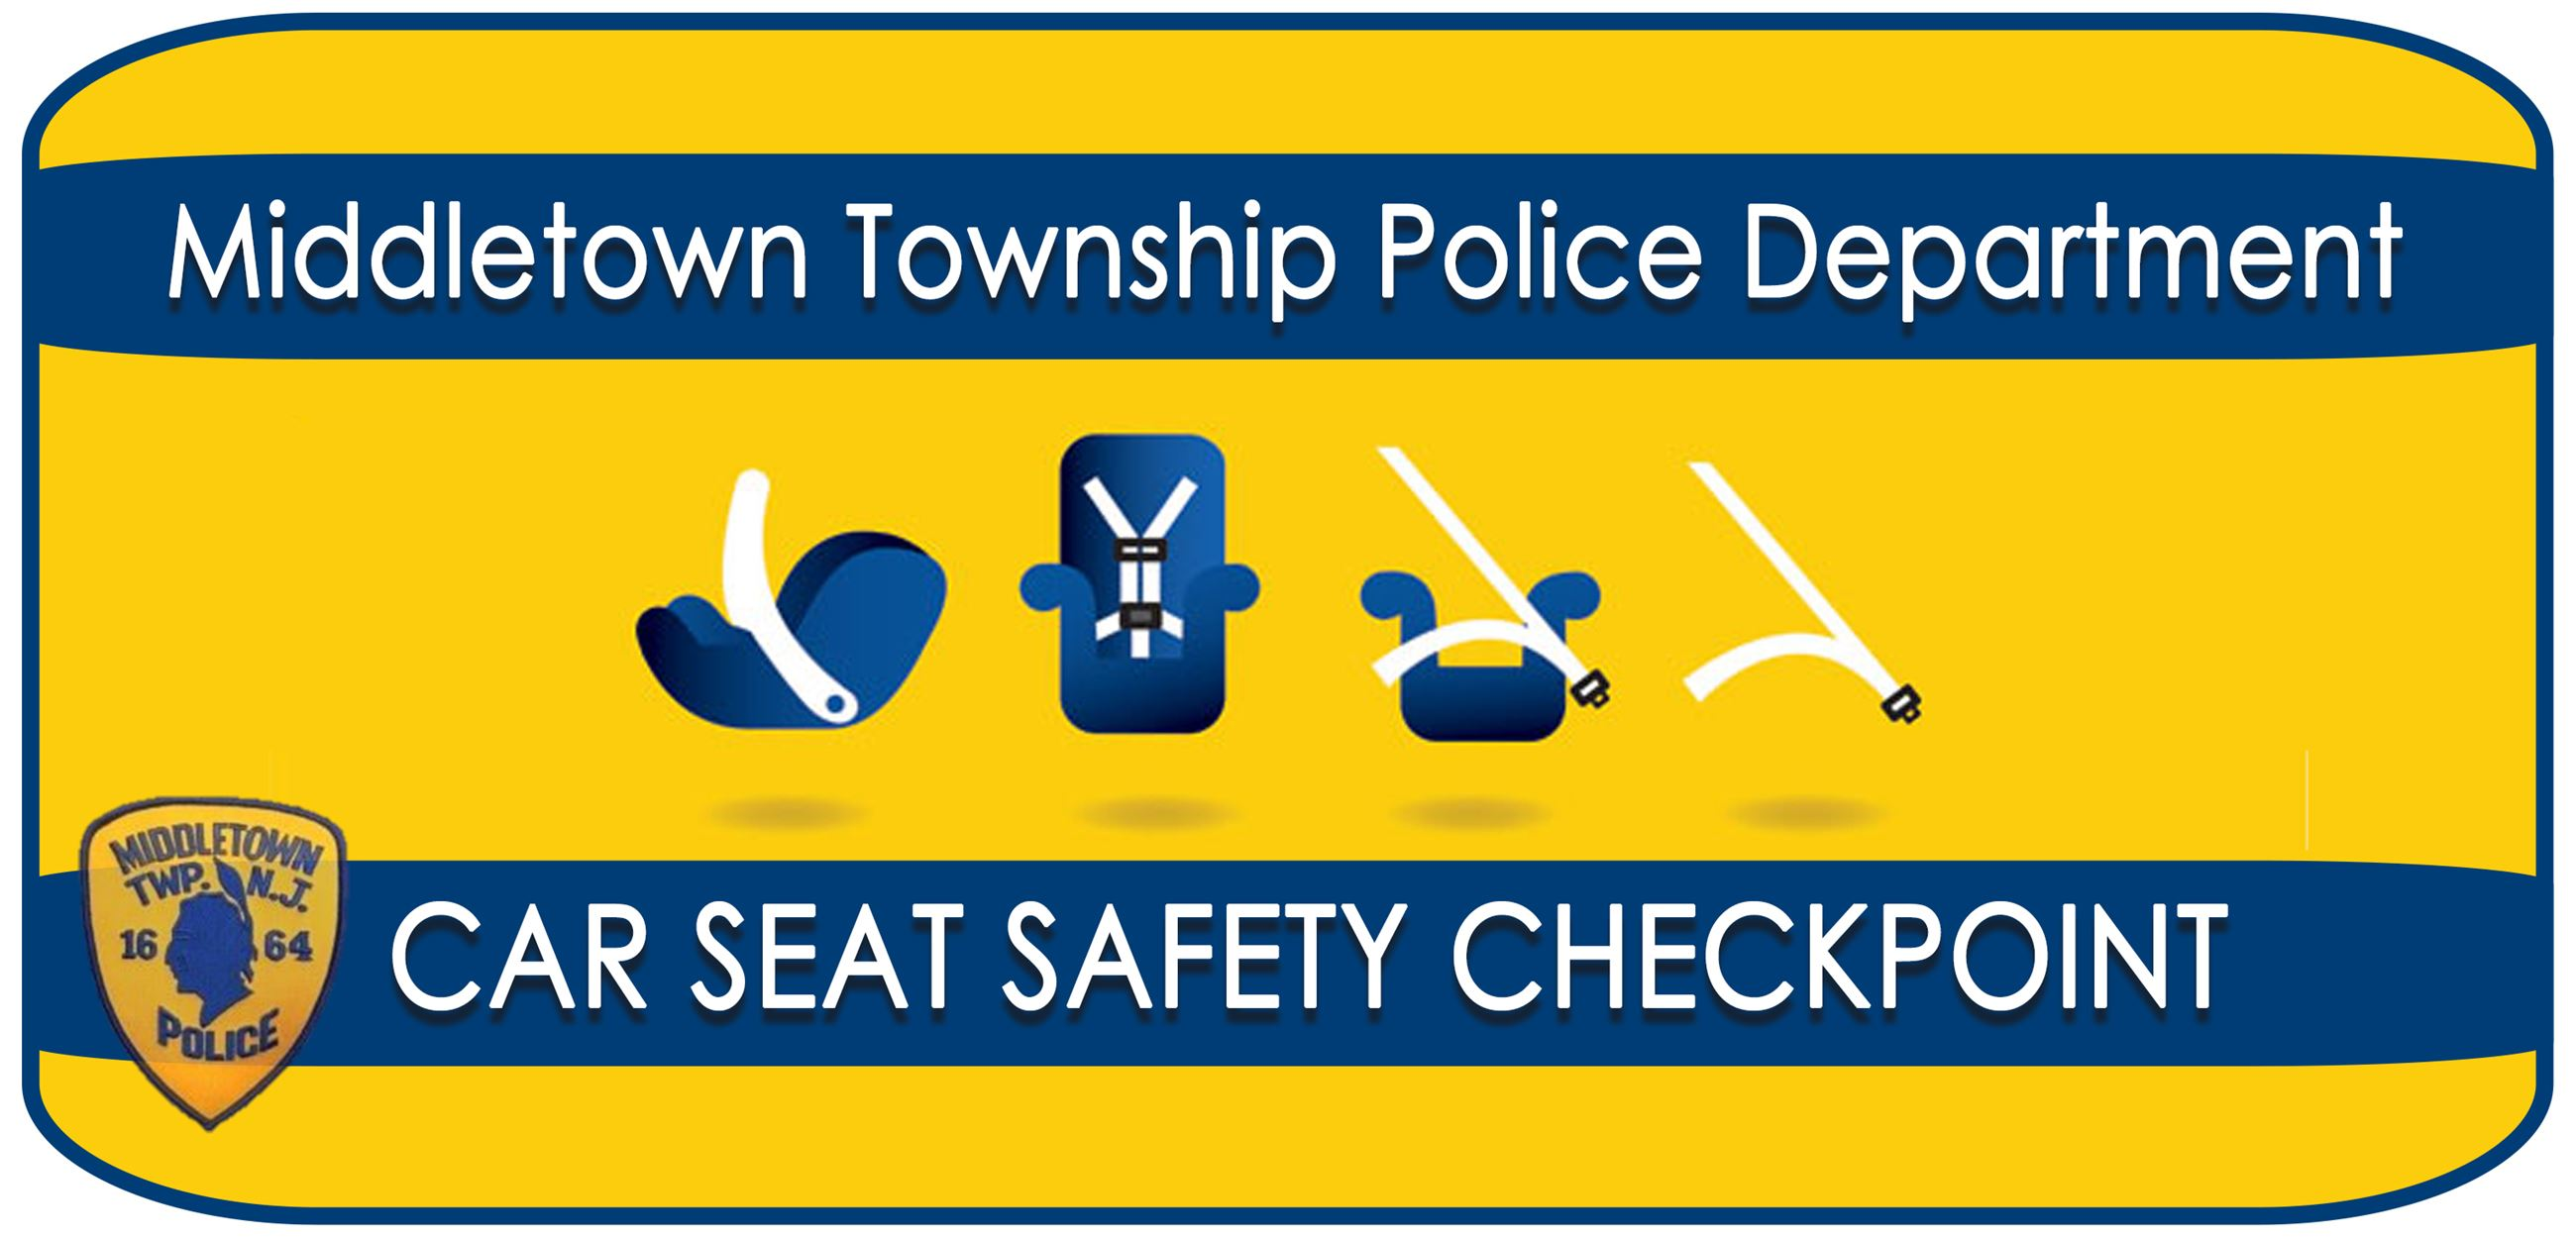 Car Seat Safety Checkpoint